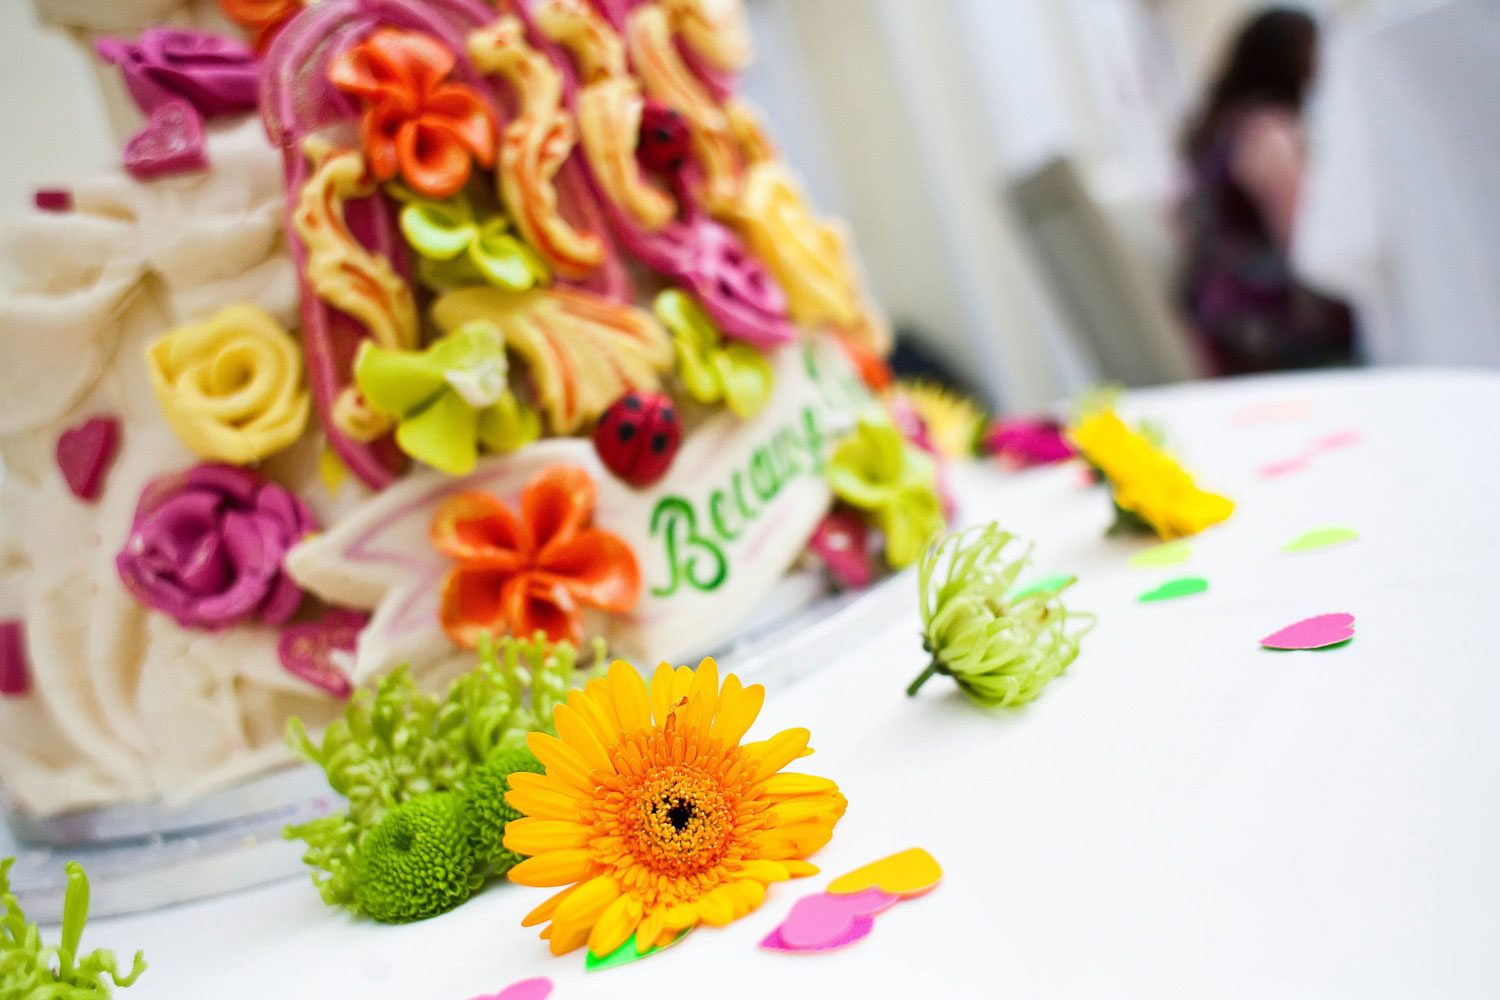 decorative flowers and wedding cakes